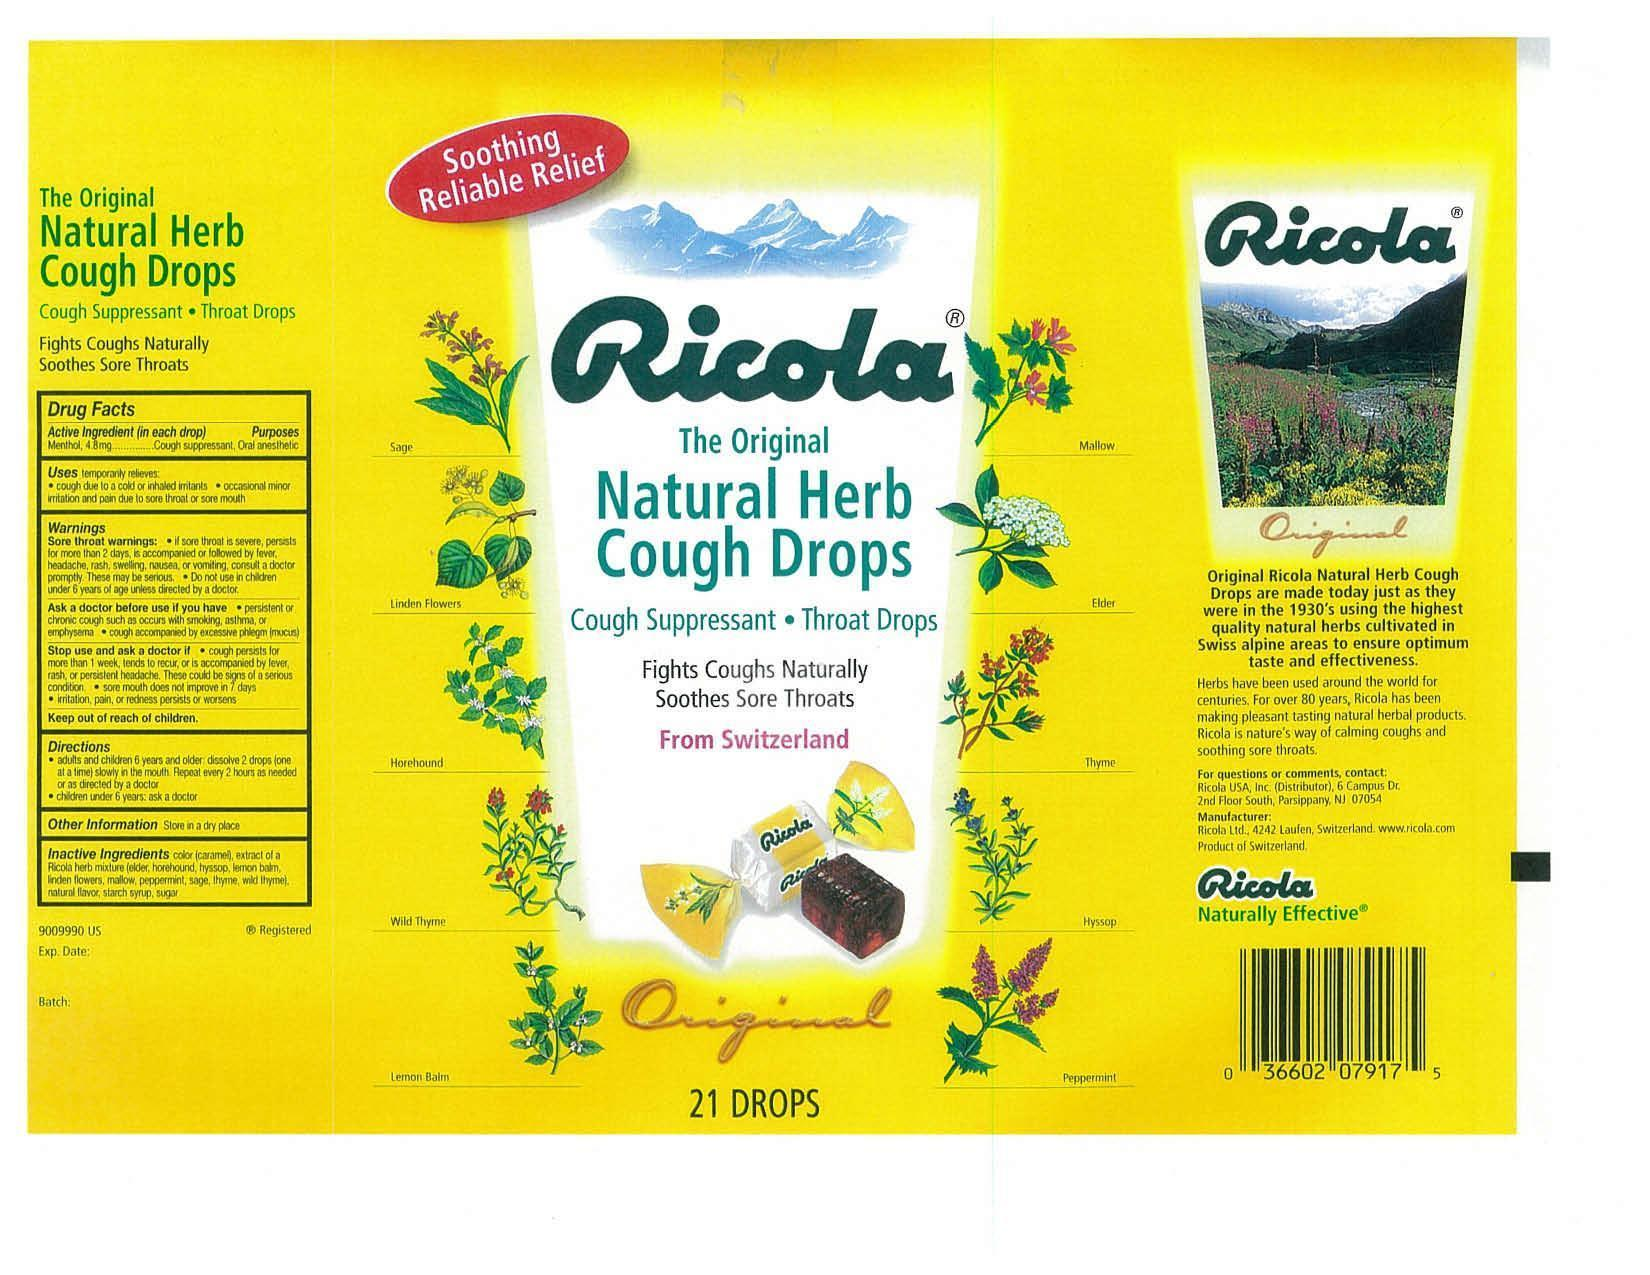 Ricola Original Nutrition Facts Nutrition Ftempo